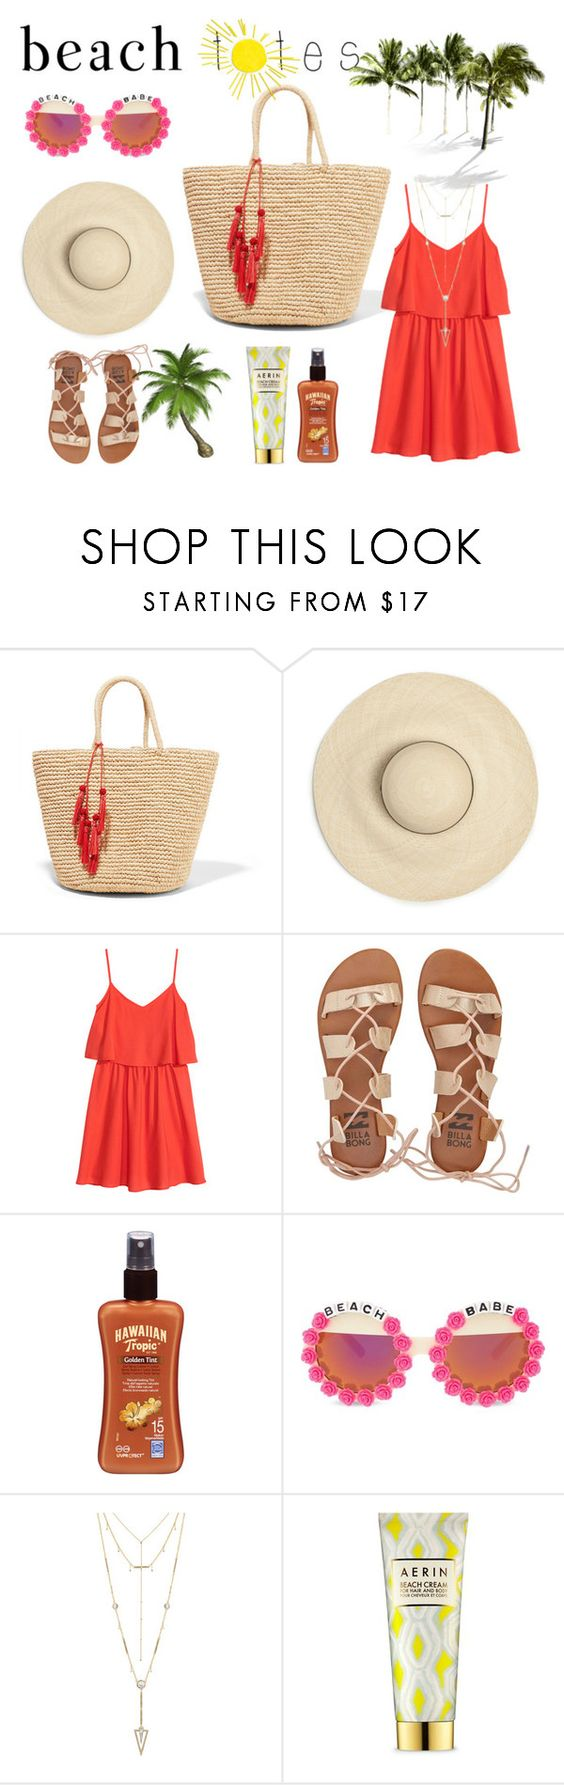 """""""Under the sun"""" by quynhanhchu ❤ liked on Polyvore featuring Sensi Studio, H&M, Billabong, Hawaiian Tropic, Rad+Refined, House of Harlow 1960, AERIN, red, flowersunglasses and beachtotes"""